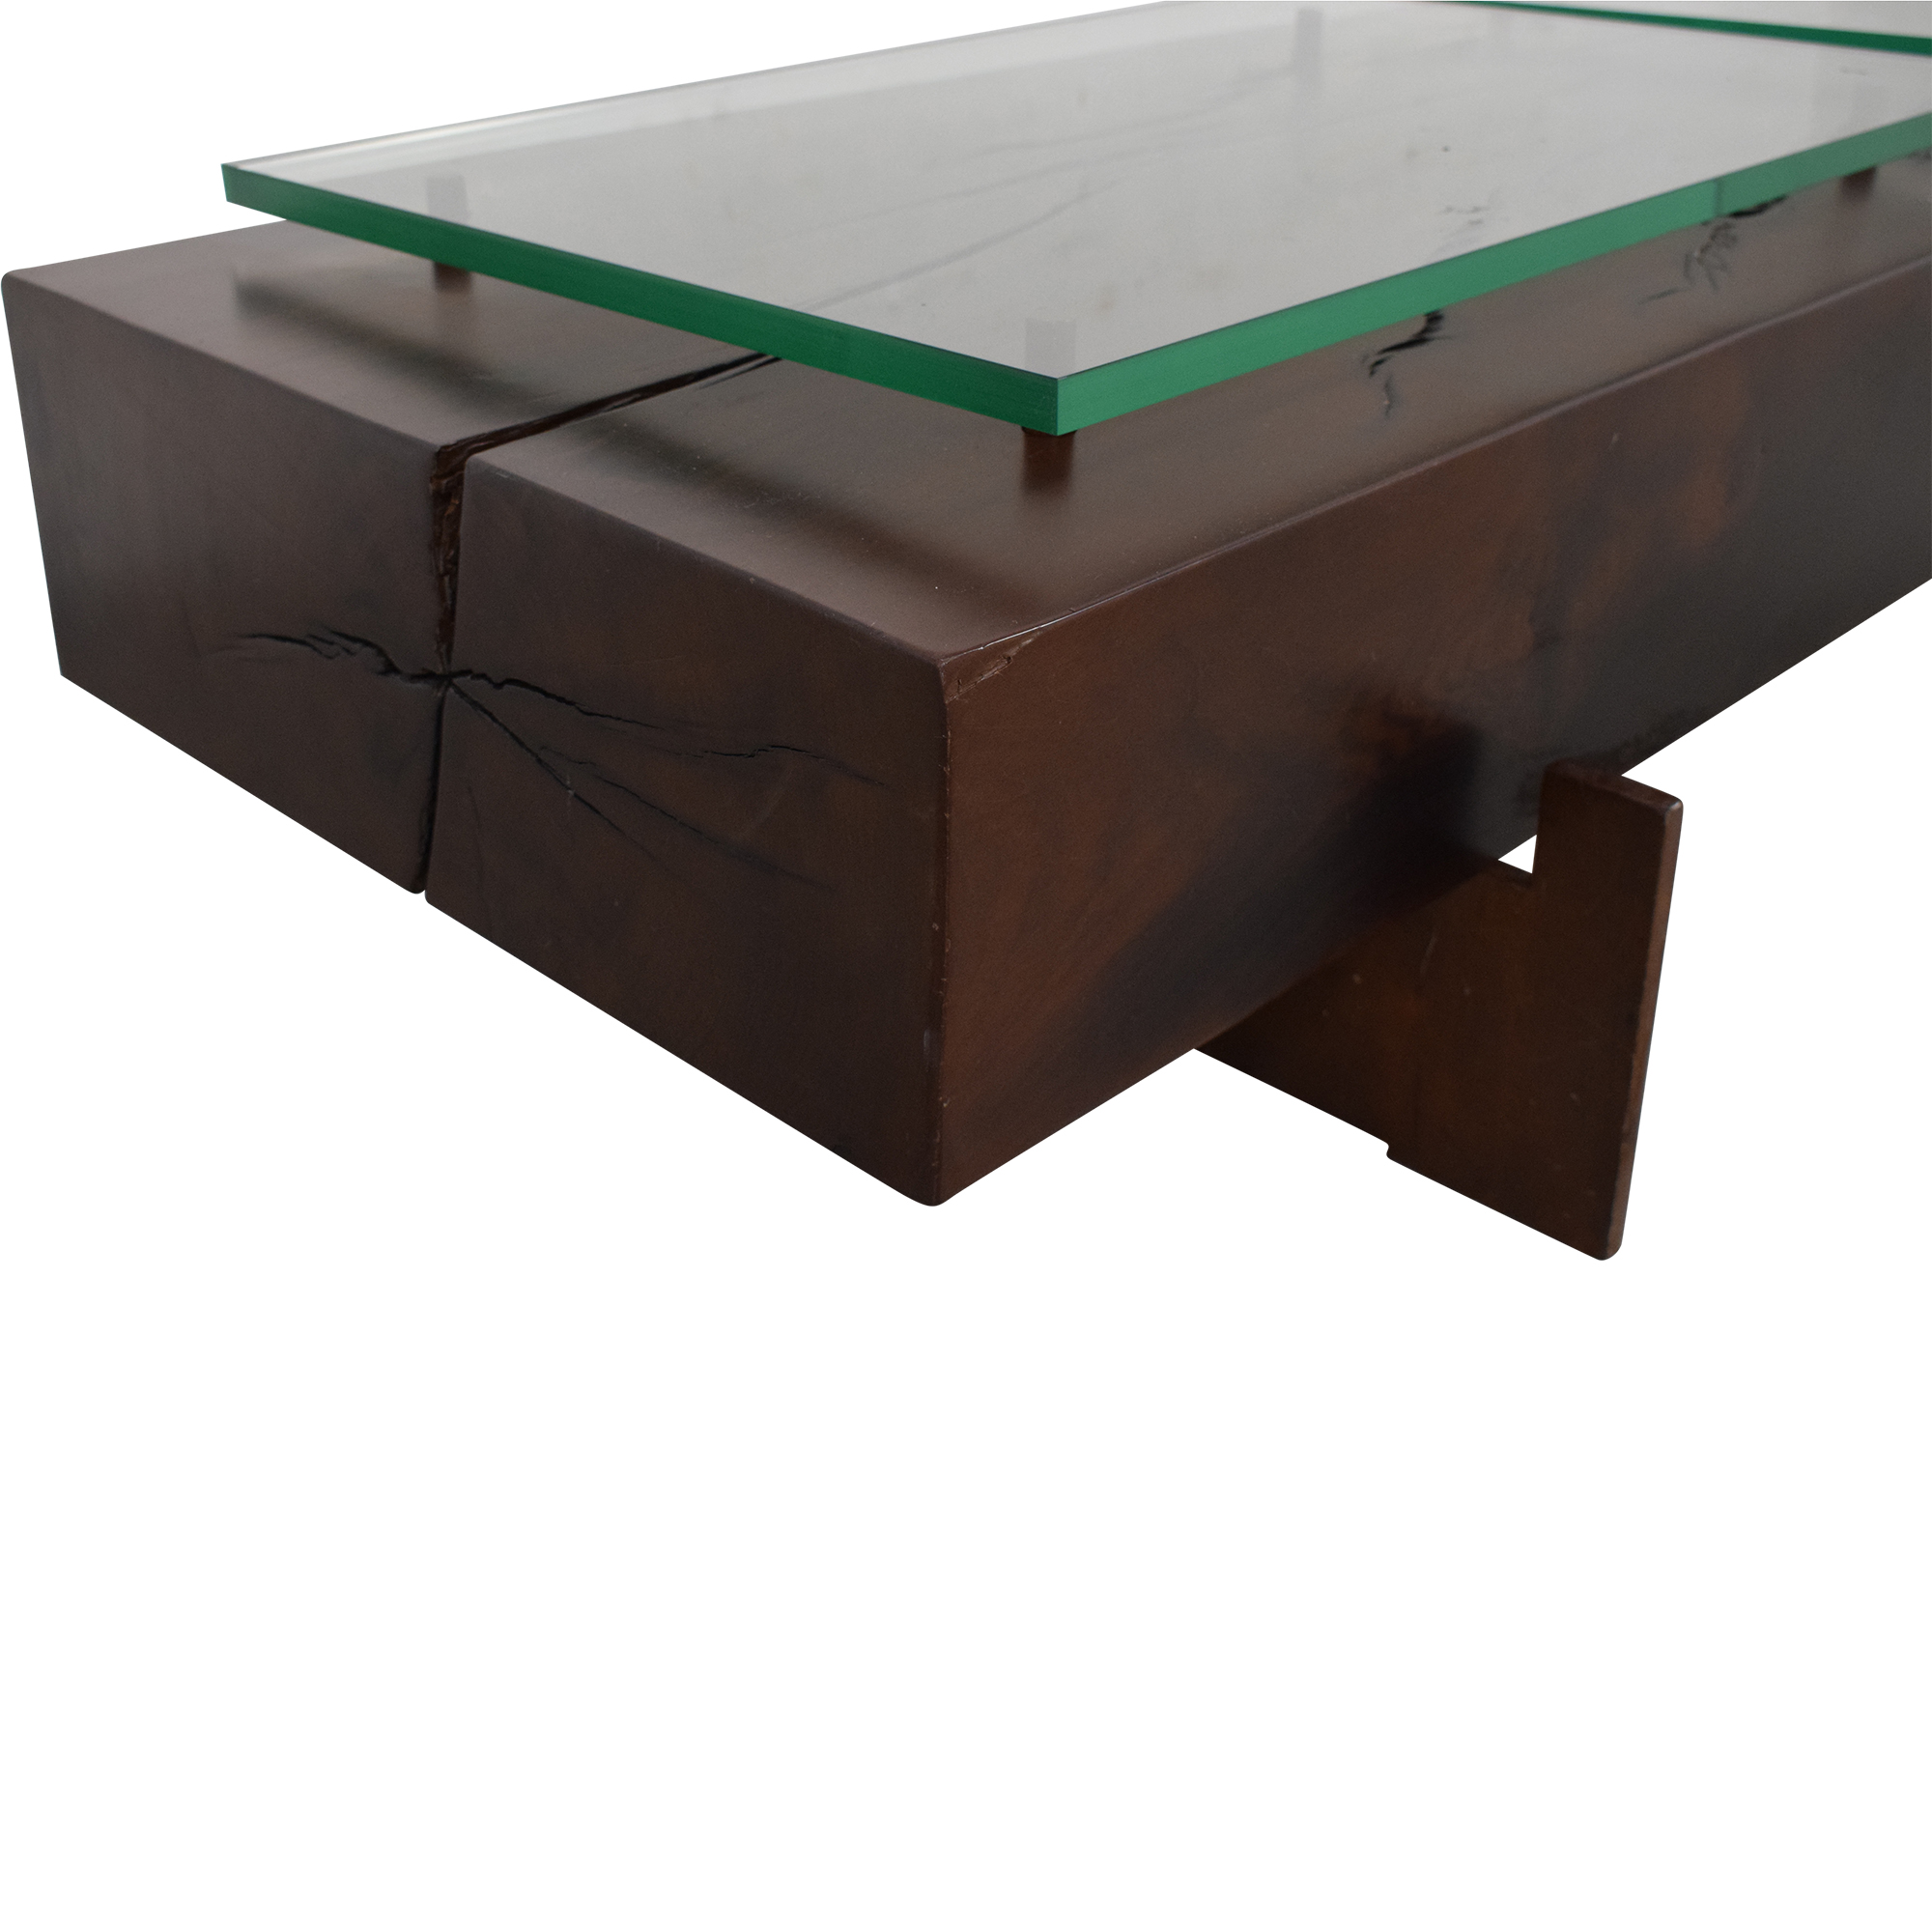 Moura Starr Iguatemi Coffee Table With Glass pa